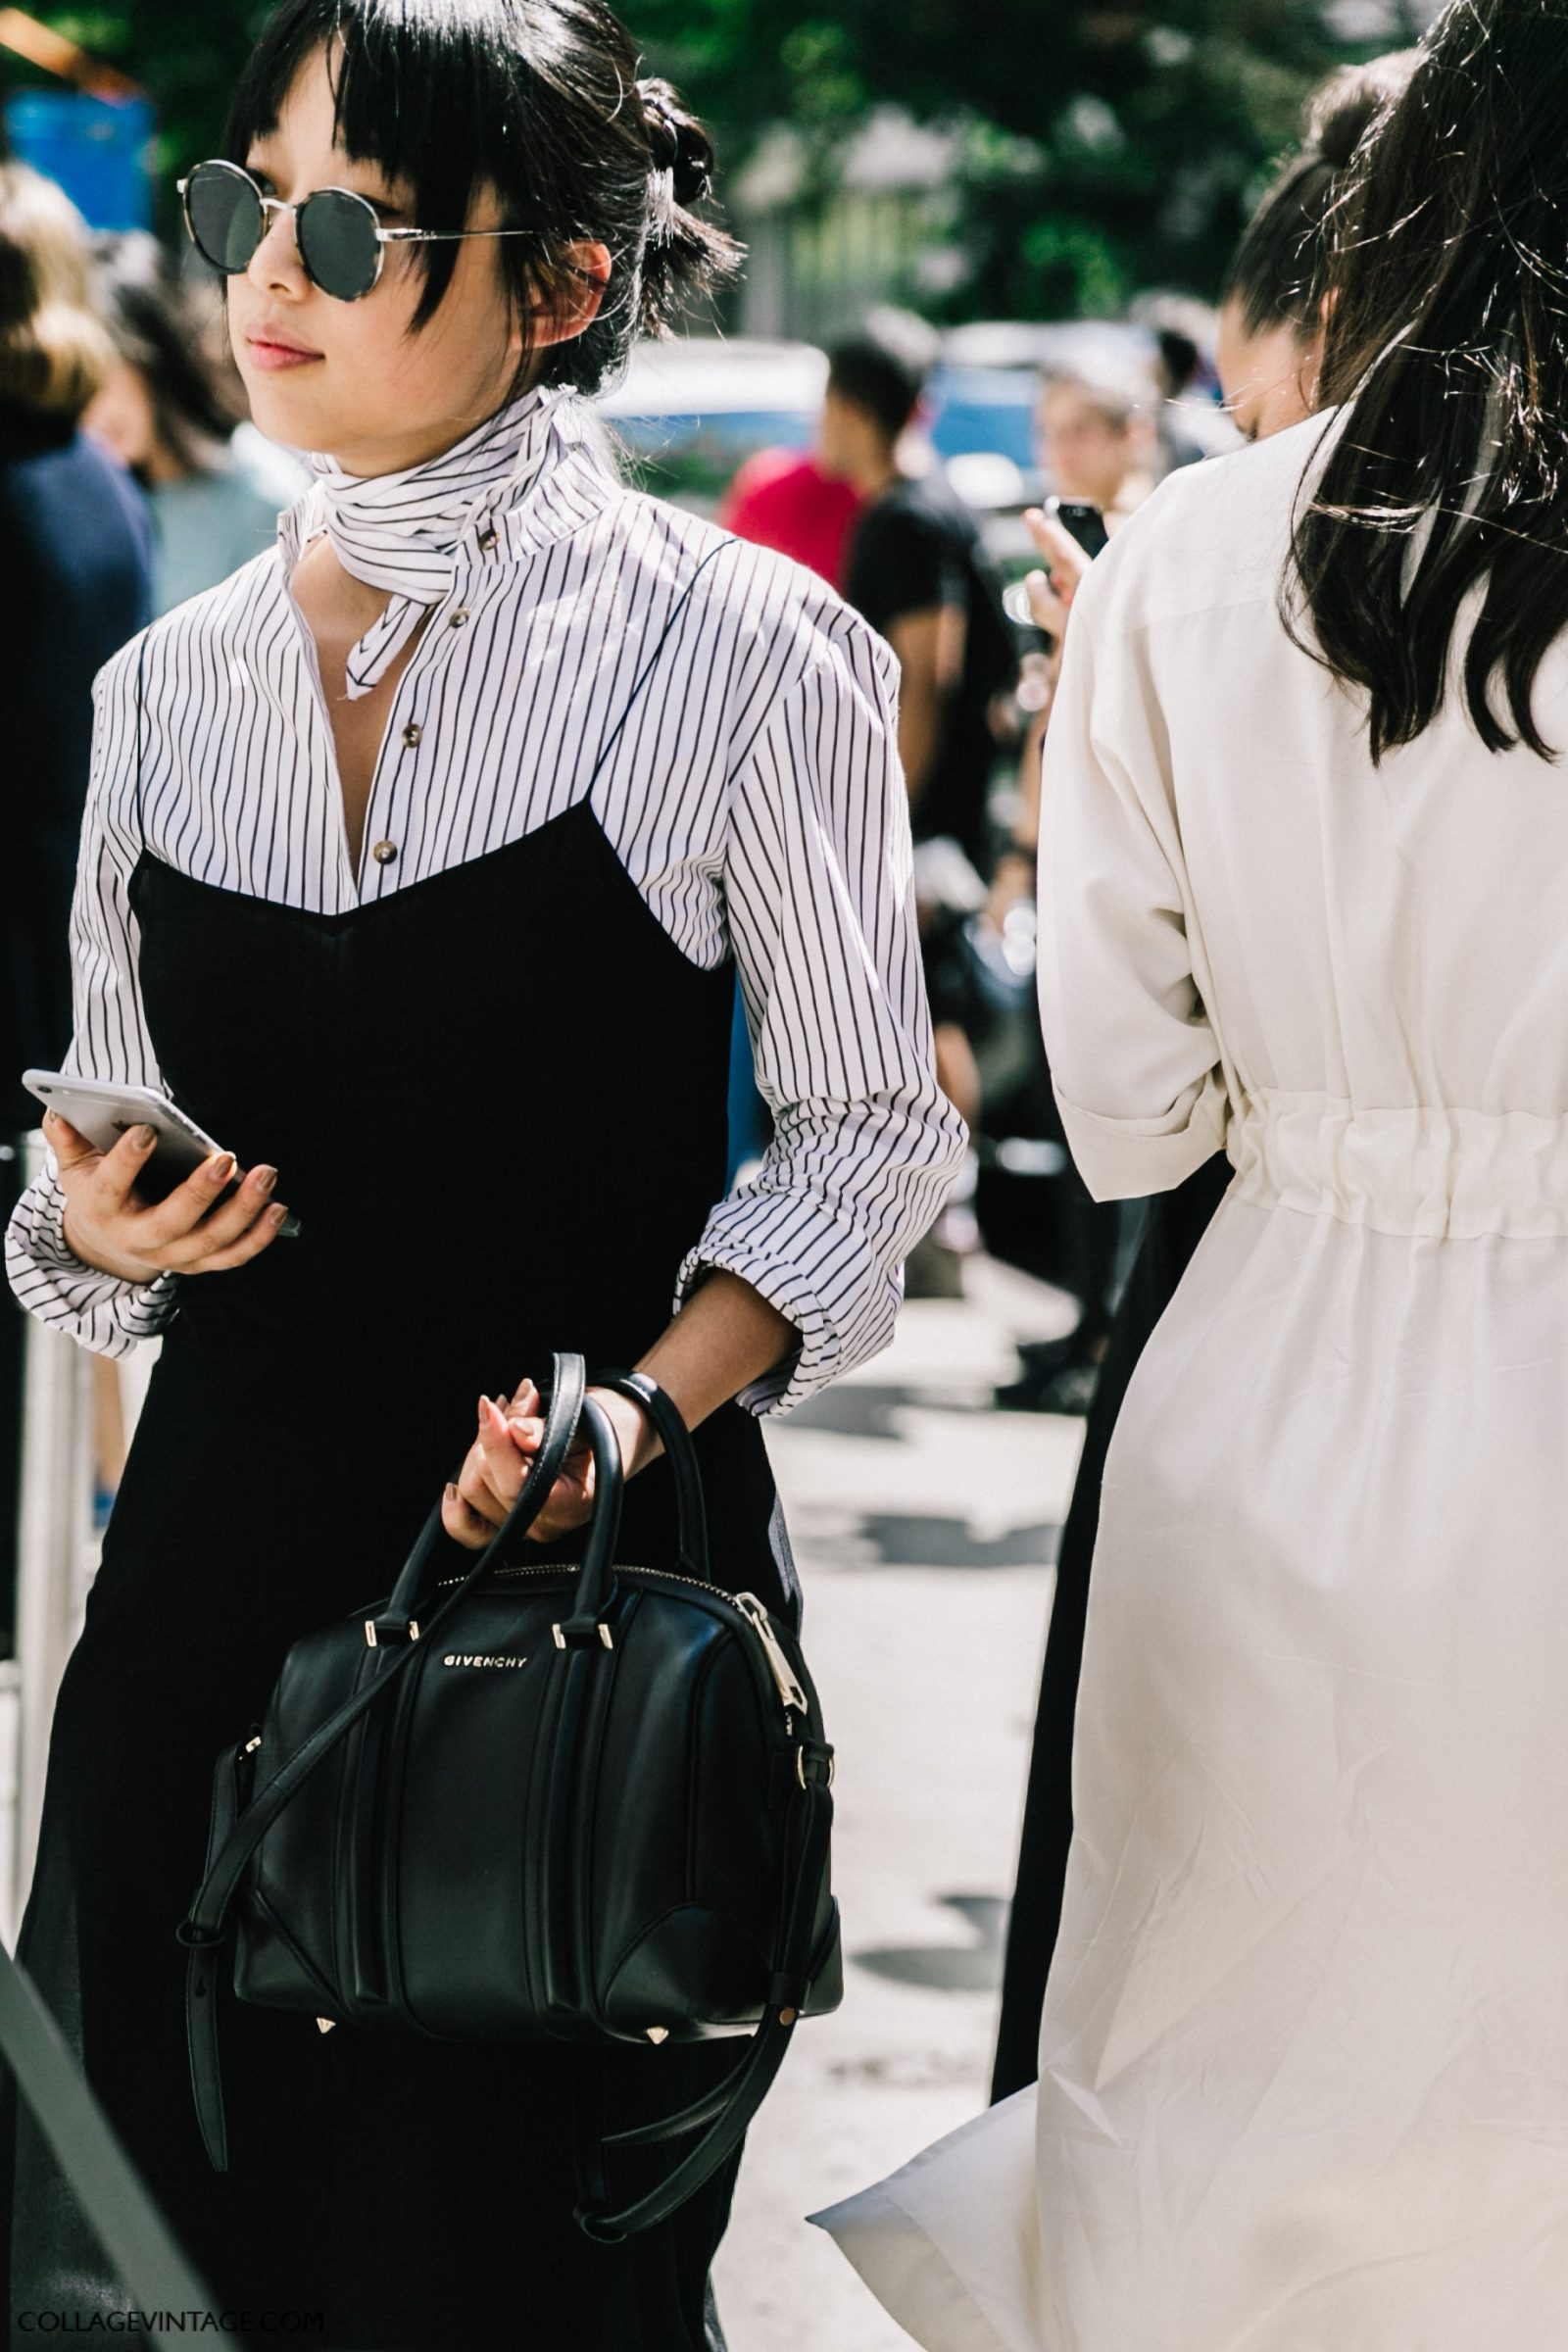 nyfw-new_york_fashion_week_ss17-street_style-outfits-collage_vintage-vintage-phillip_lim-the-row-proenza_schouler-rossie_aussolin-213